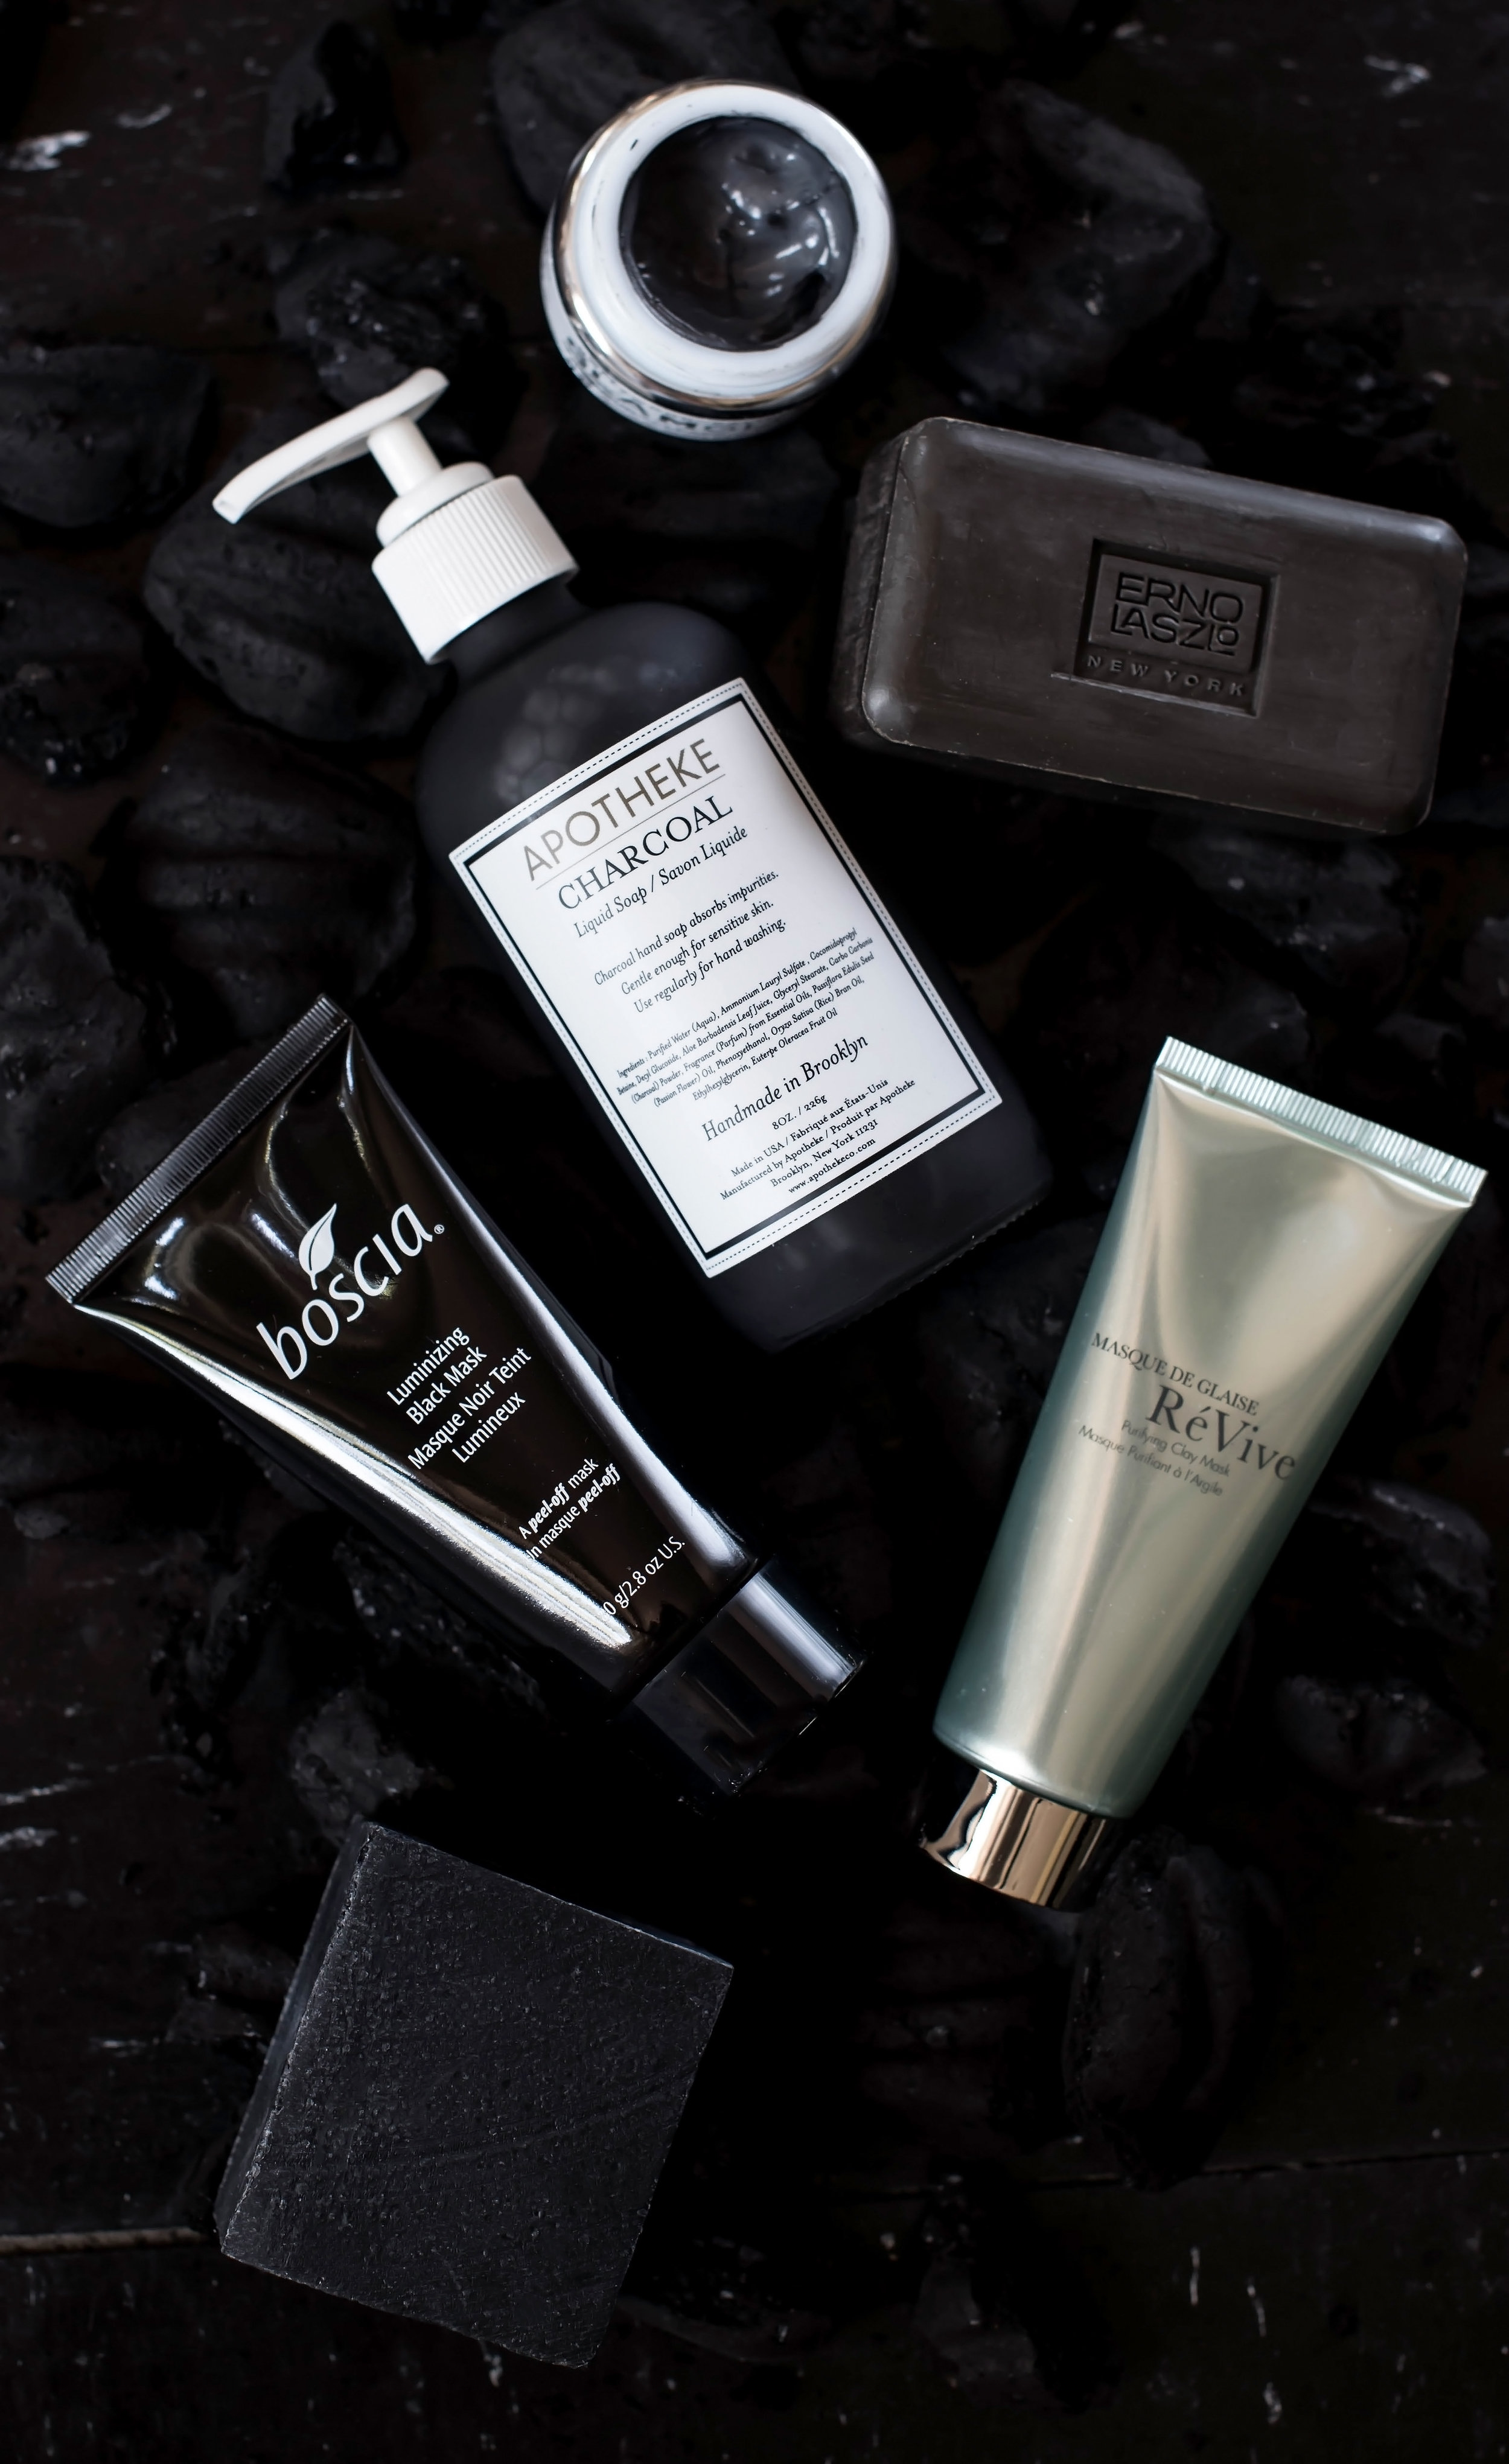 ROSE & IVY Journal A Guide to Charcoal Laced Skincare